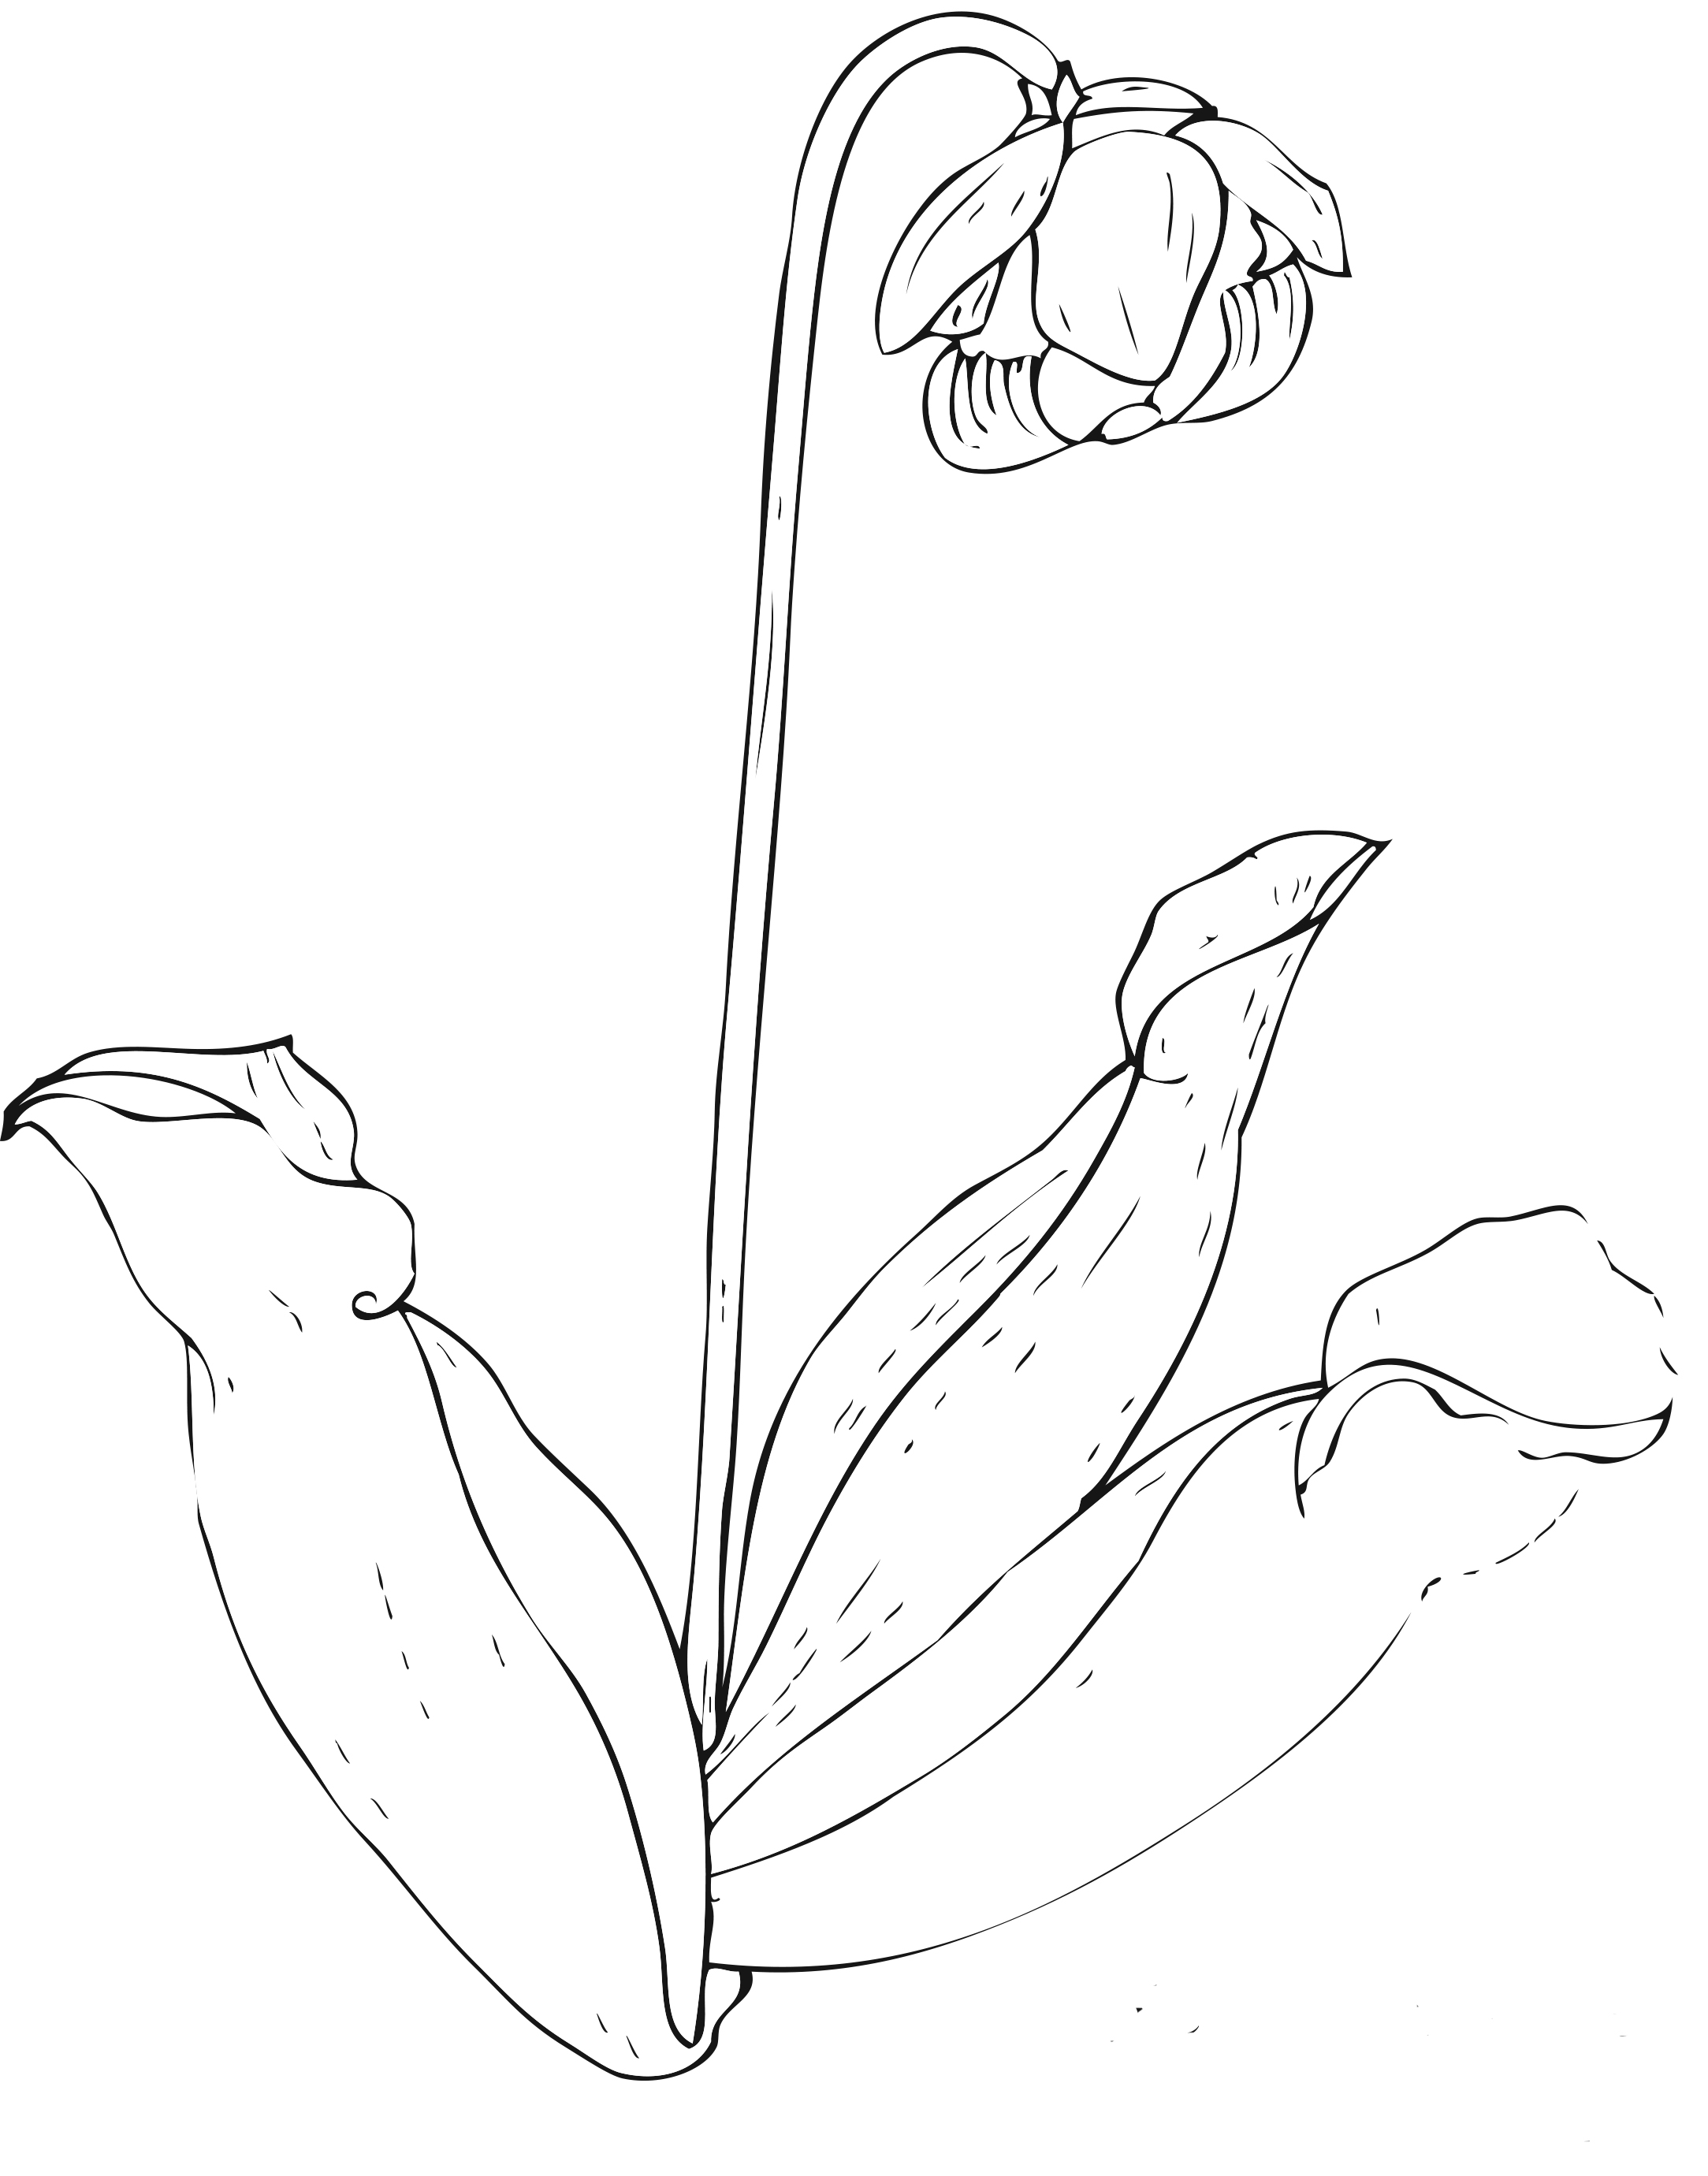 childrens coloring pages flowers free printable flower coloring pages for kids best coloring flowers pages childrens